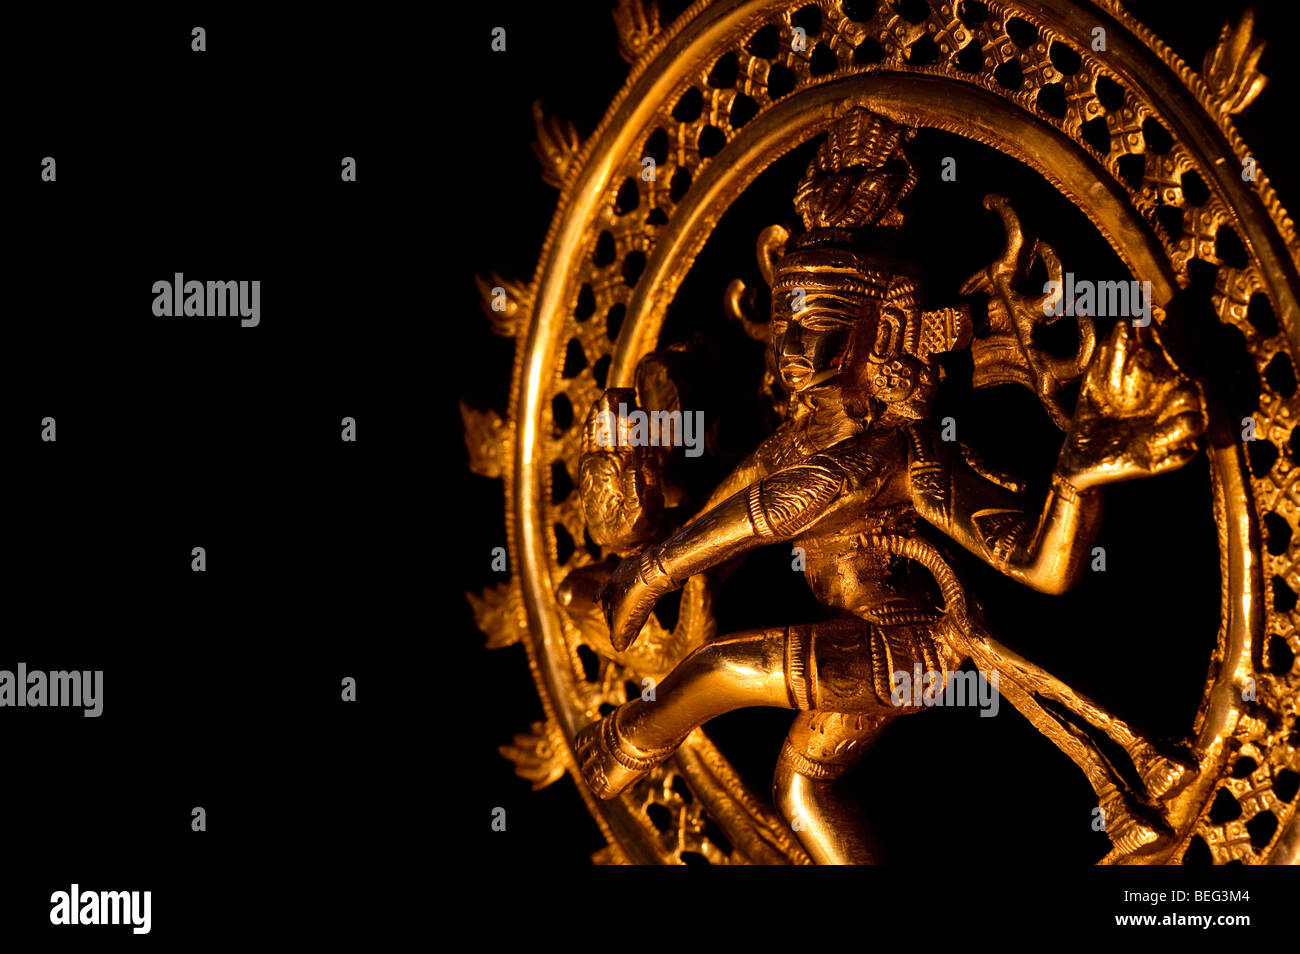 Wonderful Wallpaper Lord Nataraja - dancing-lord-shiva-statue-nataraja-against-black-background-BEG3M4  2018_41774.jpg